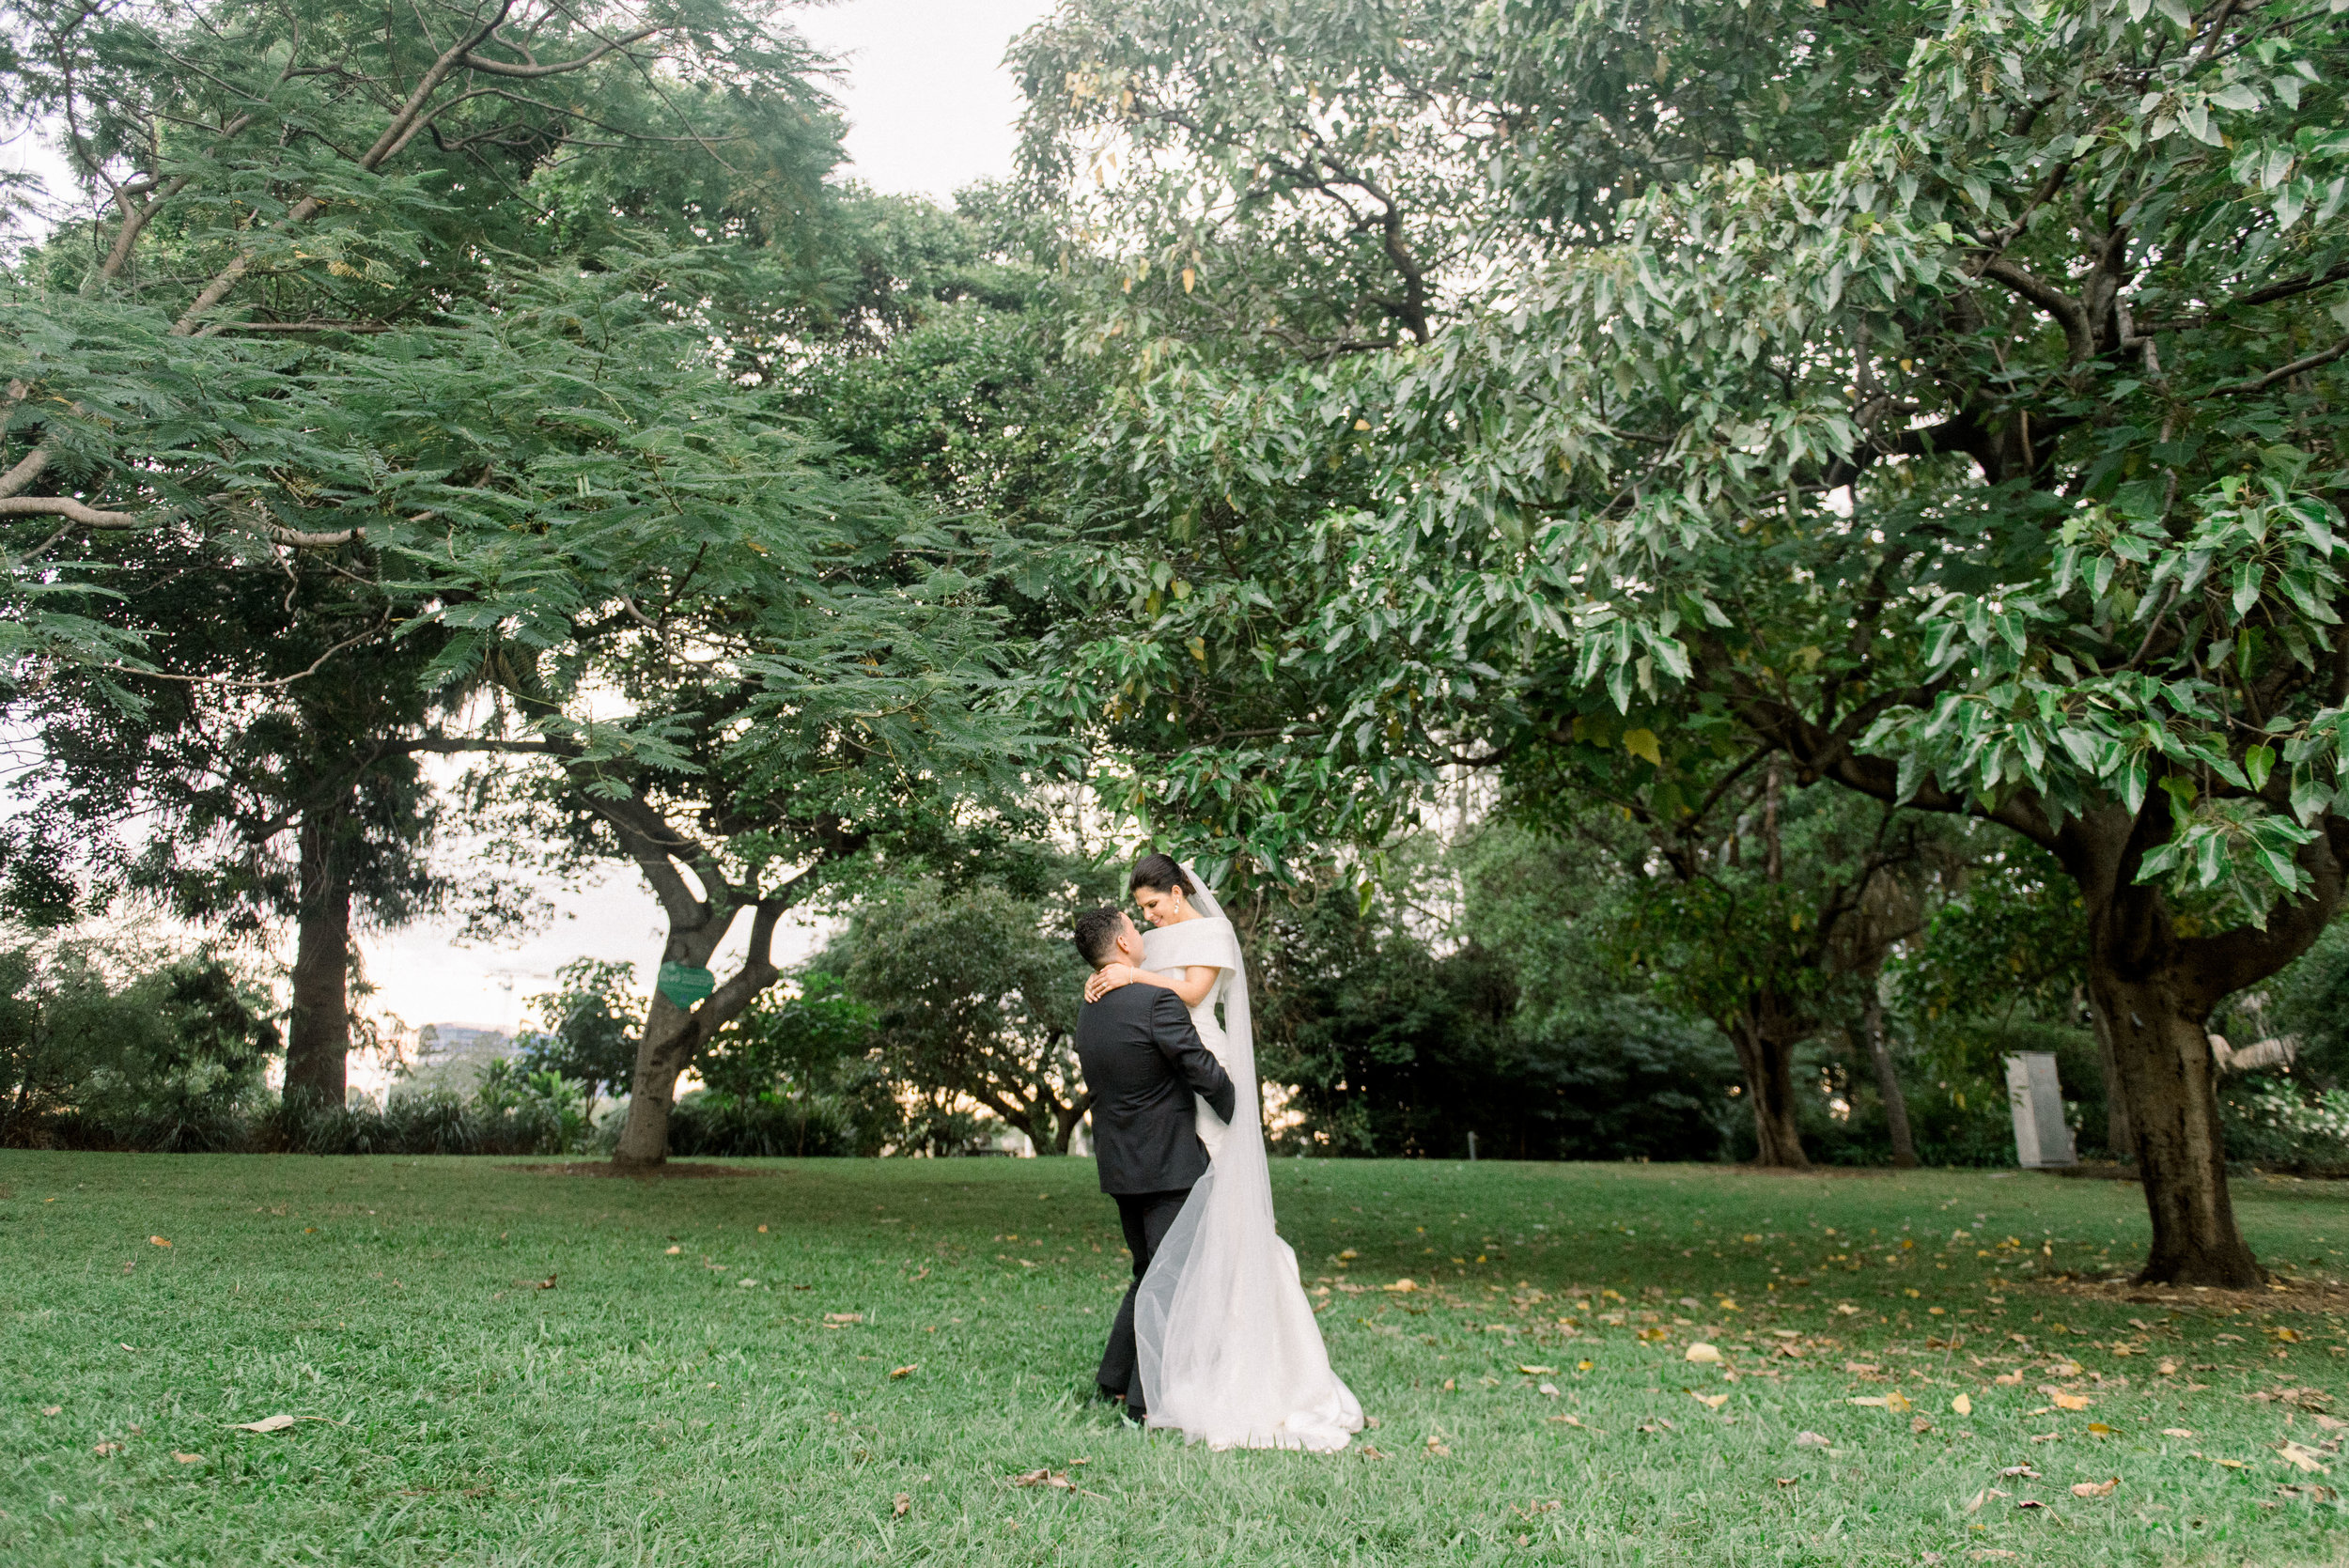 black-bird-brisbane-wedding-photography-film-photography-beautiful-reception-dance-candid-tweed-coast-wedding-122.jpg